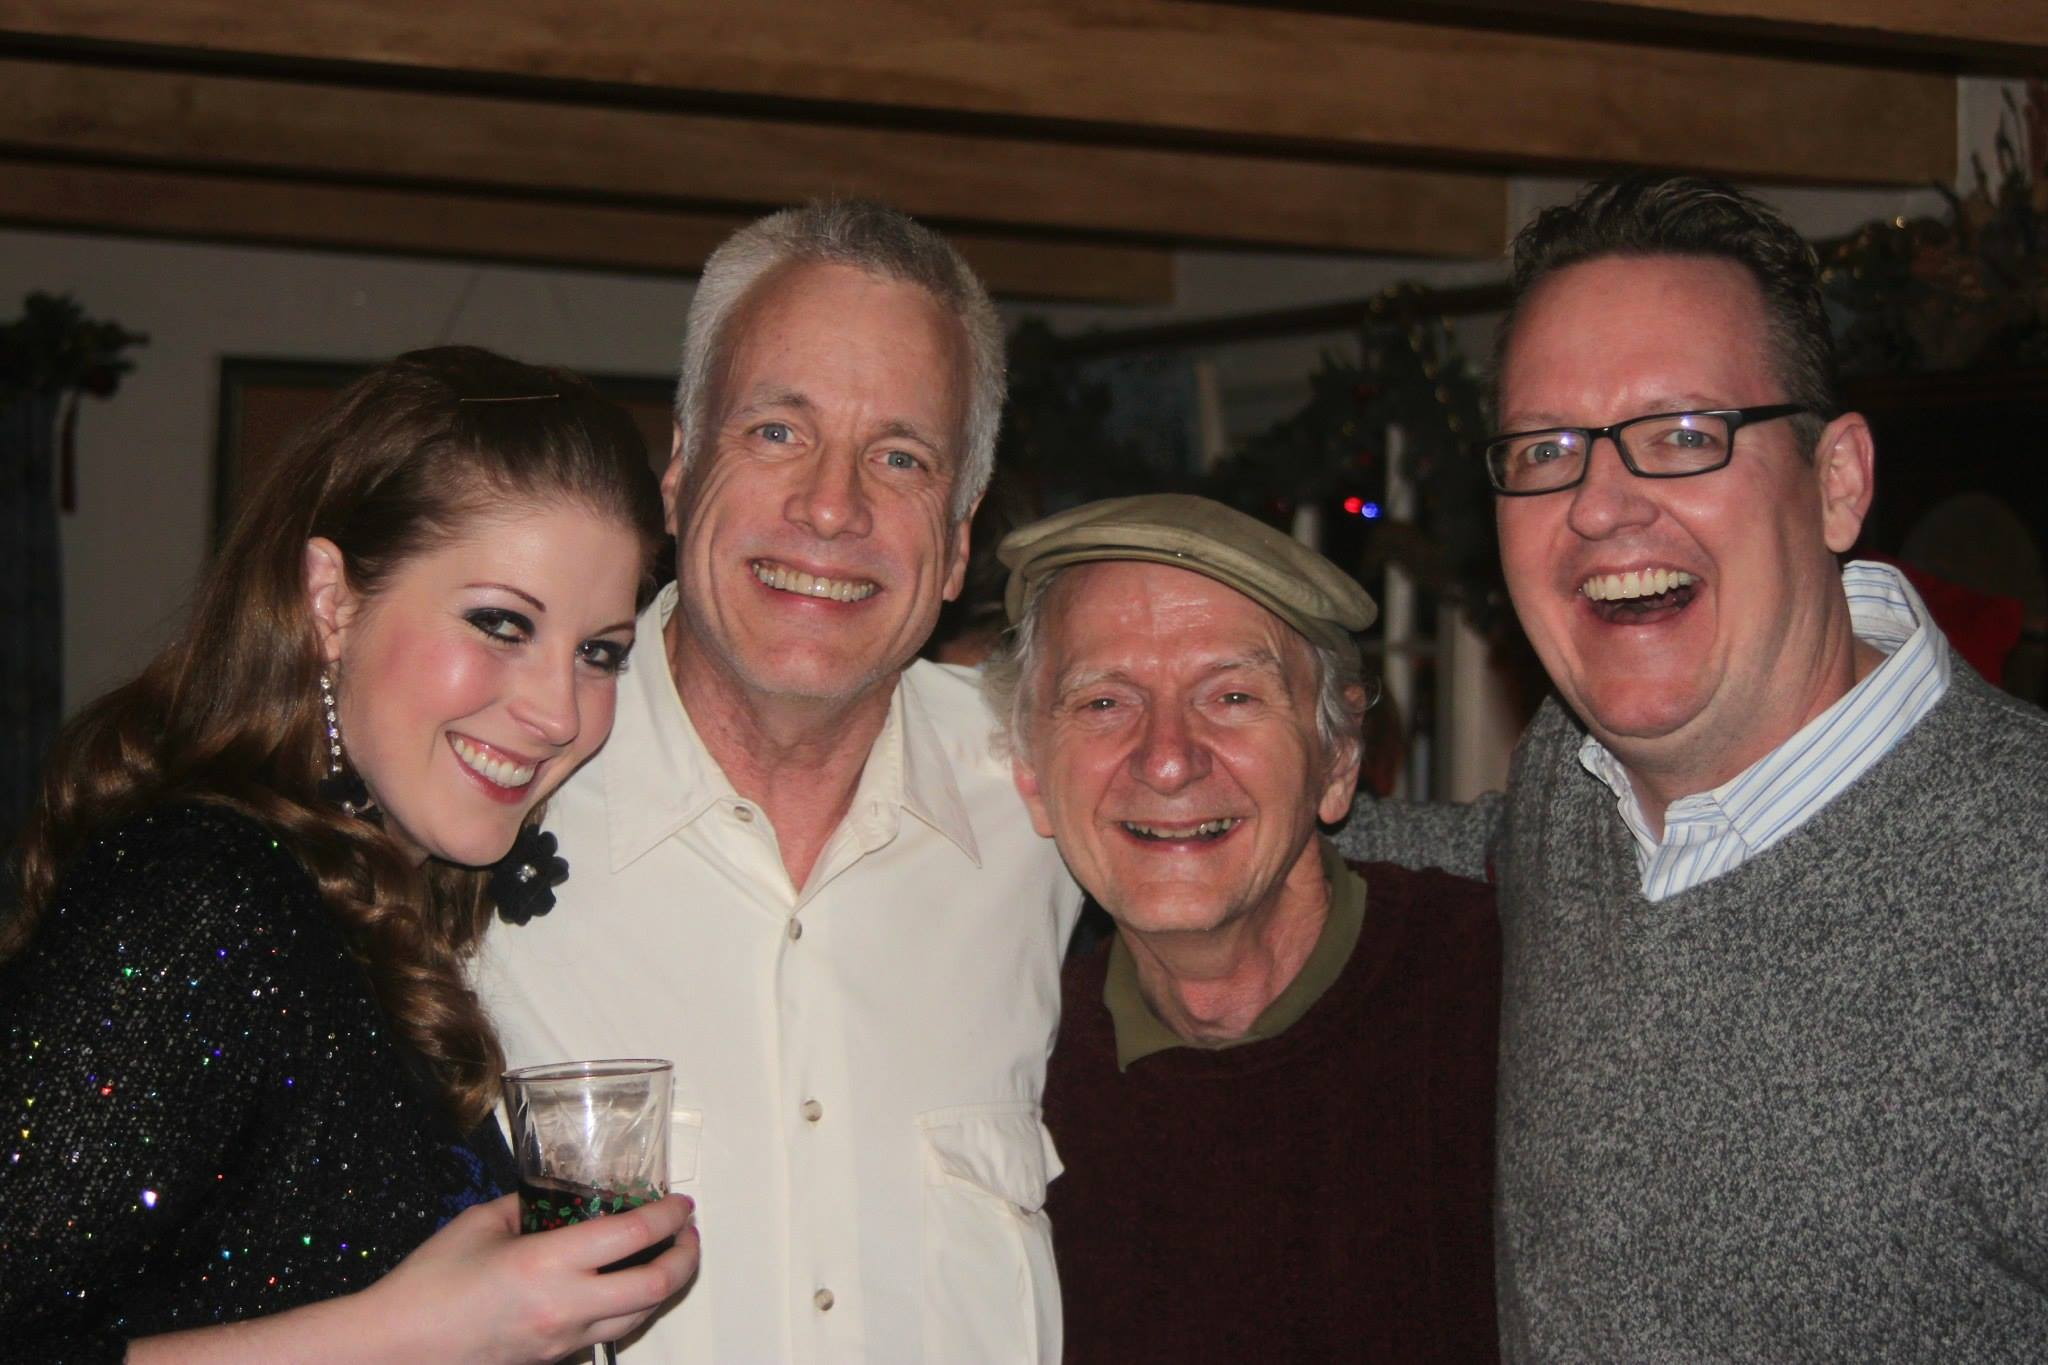 Carolyn Pain's 2013 Christmas party attracted Caroline Wagner, Craig Bohmler, Mike Lawler and D. Scott Withers.